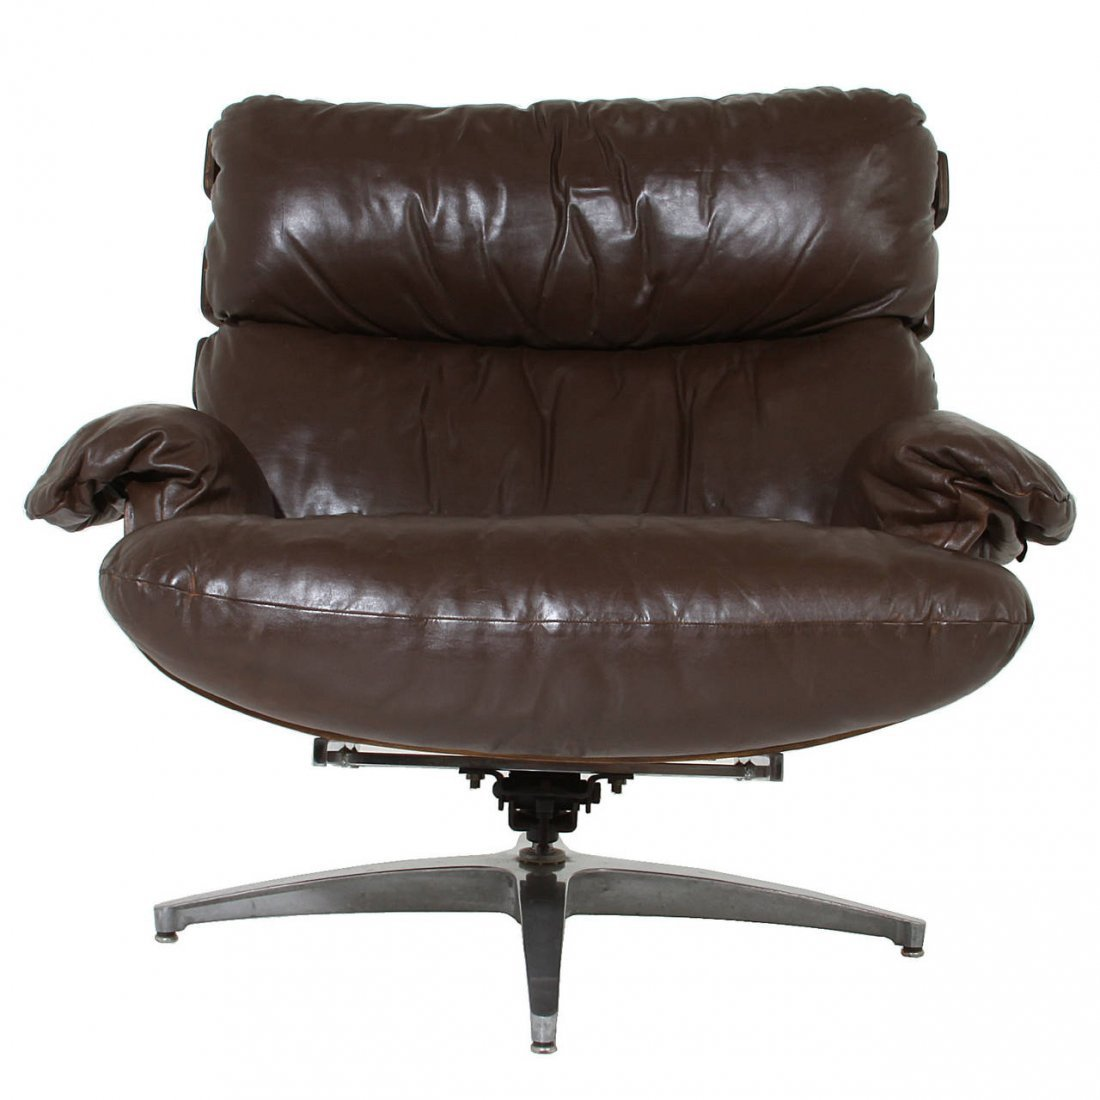 Directional rosewood and leather swivel chair - 5